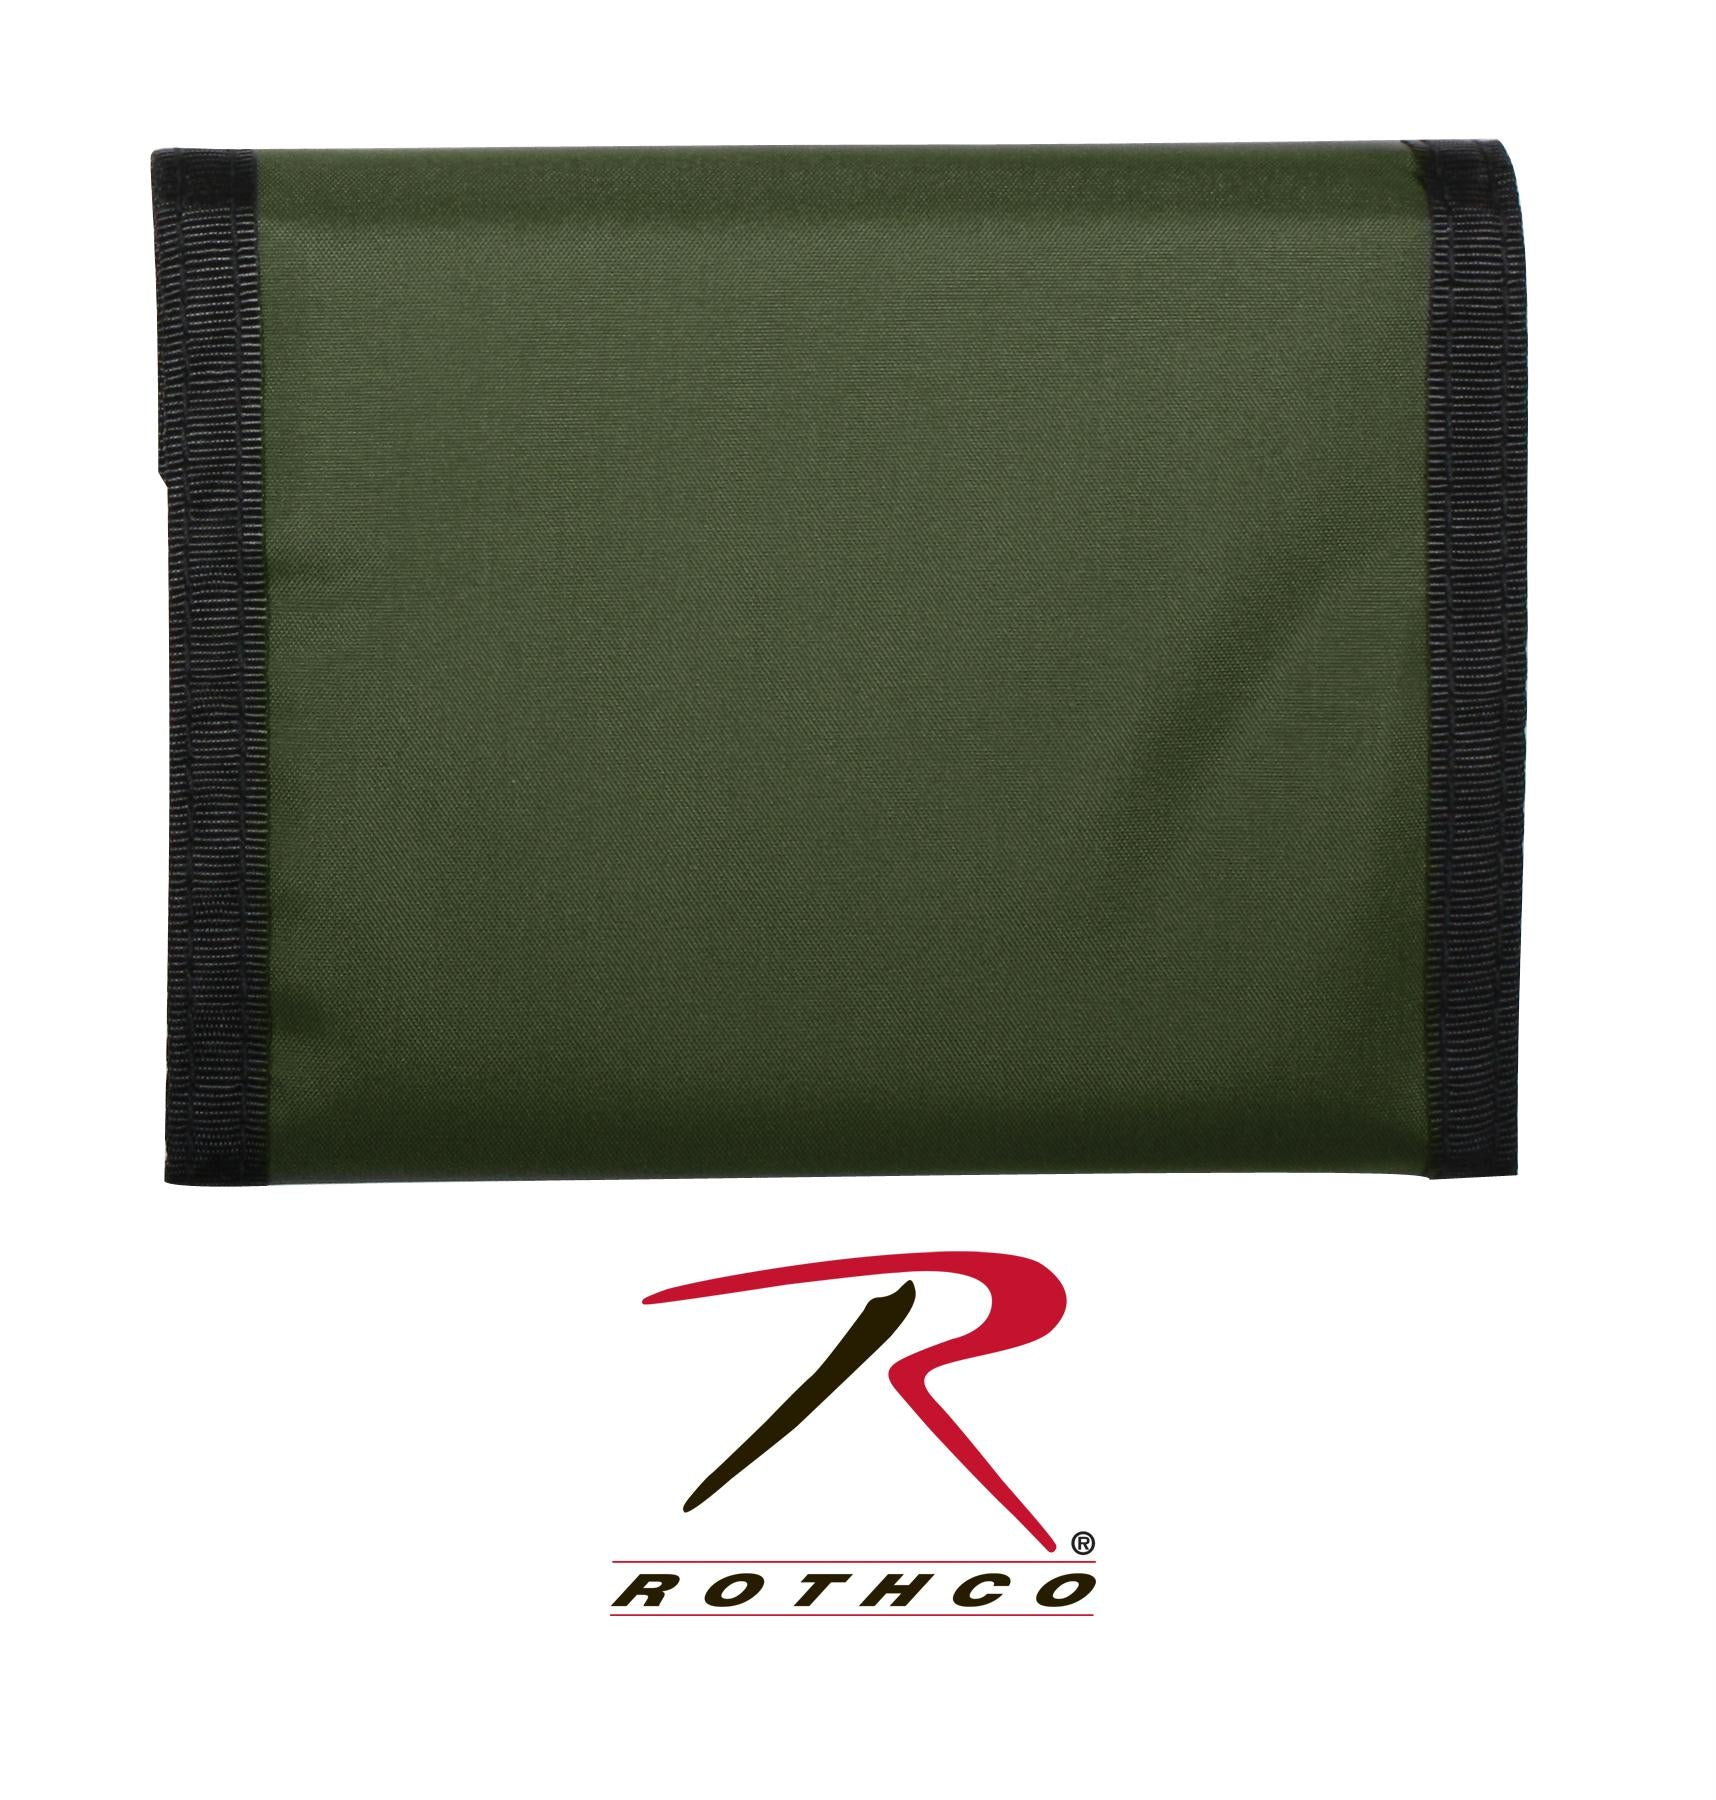 Rothco Commando Wallet - Olive Drab